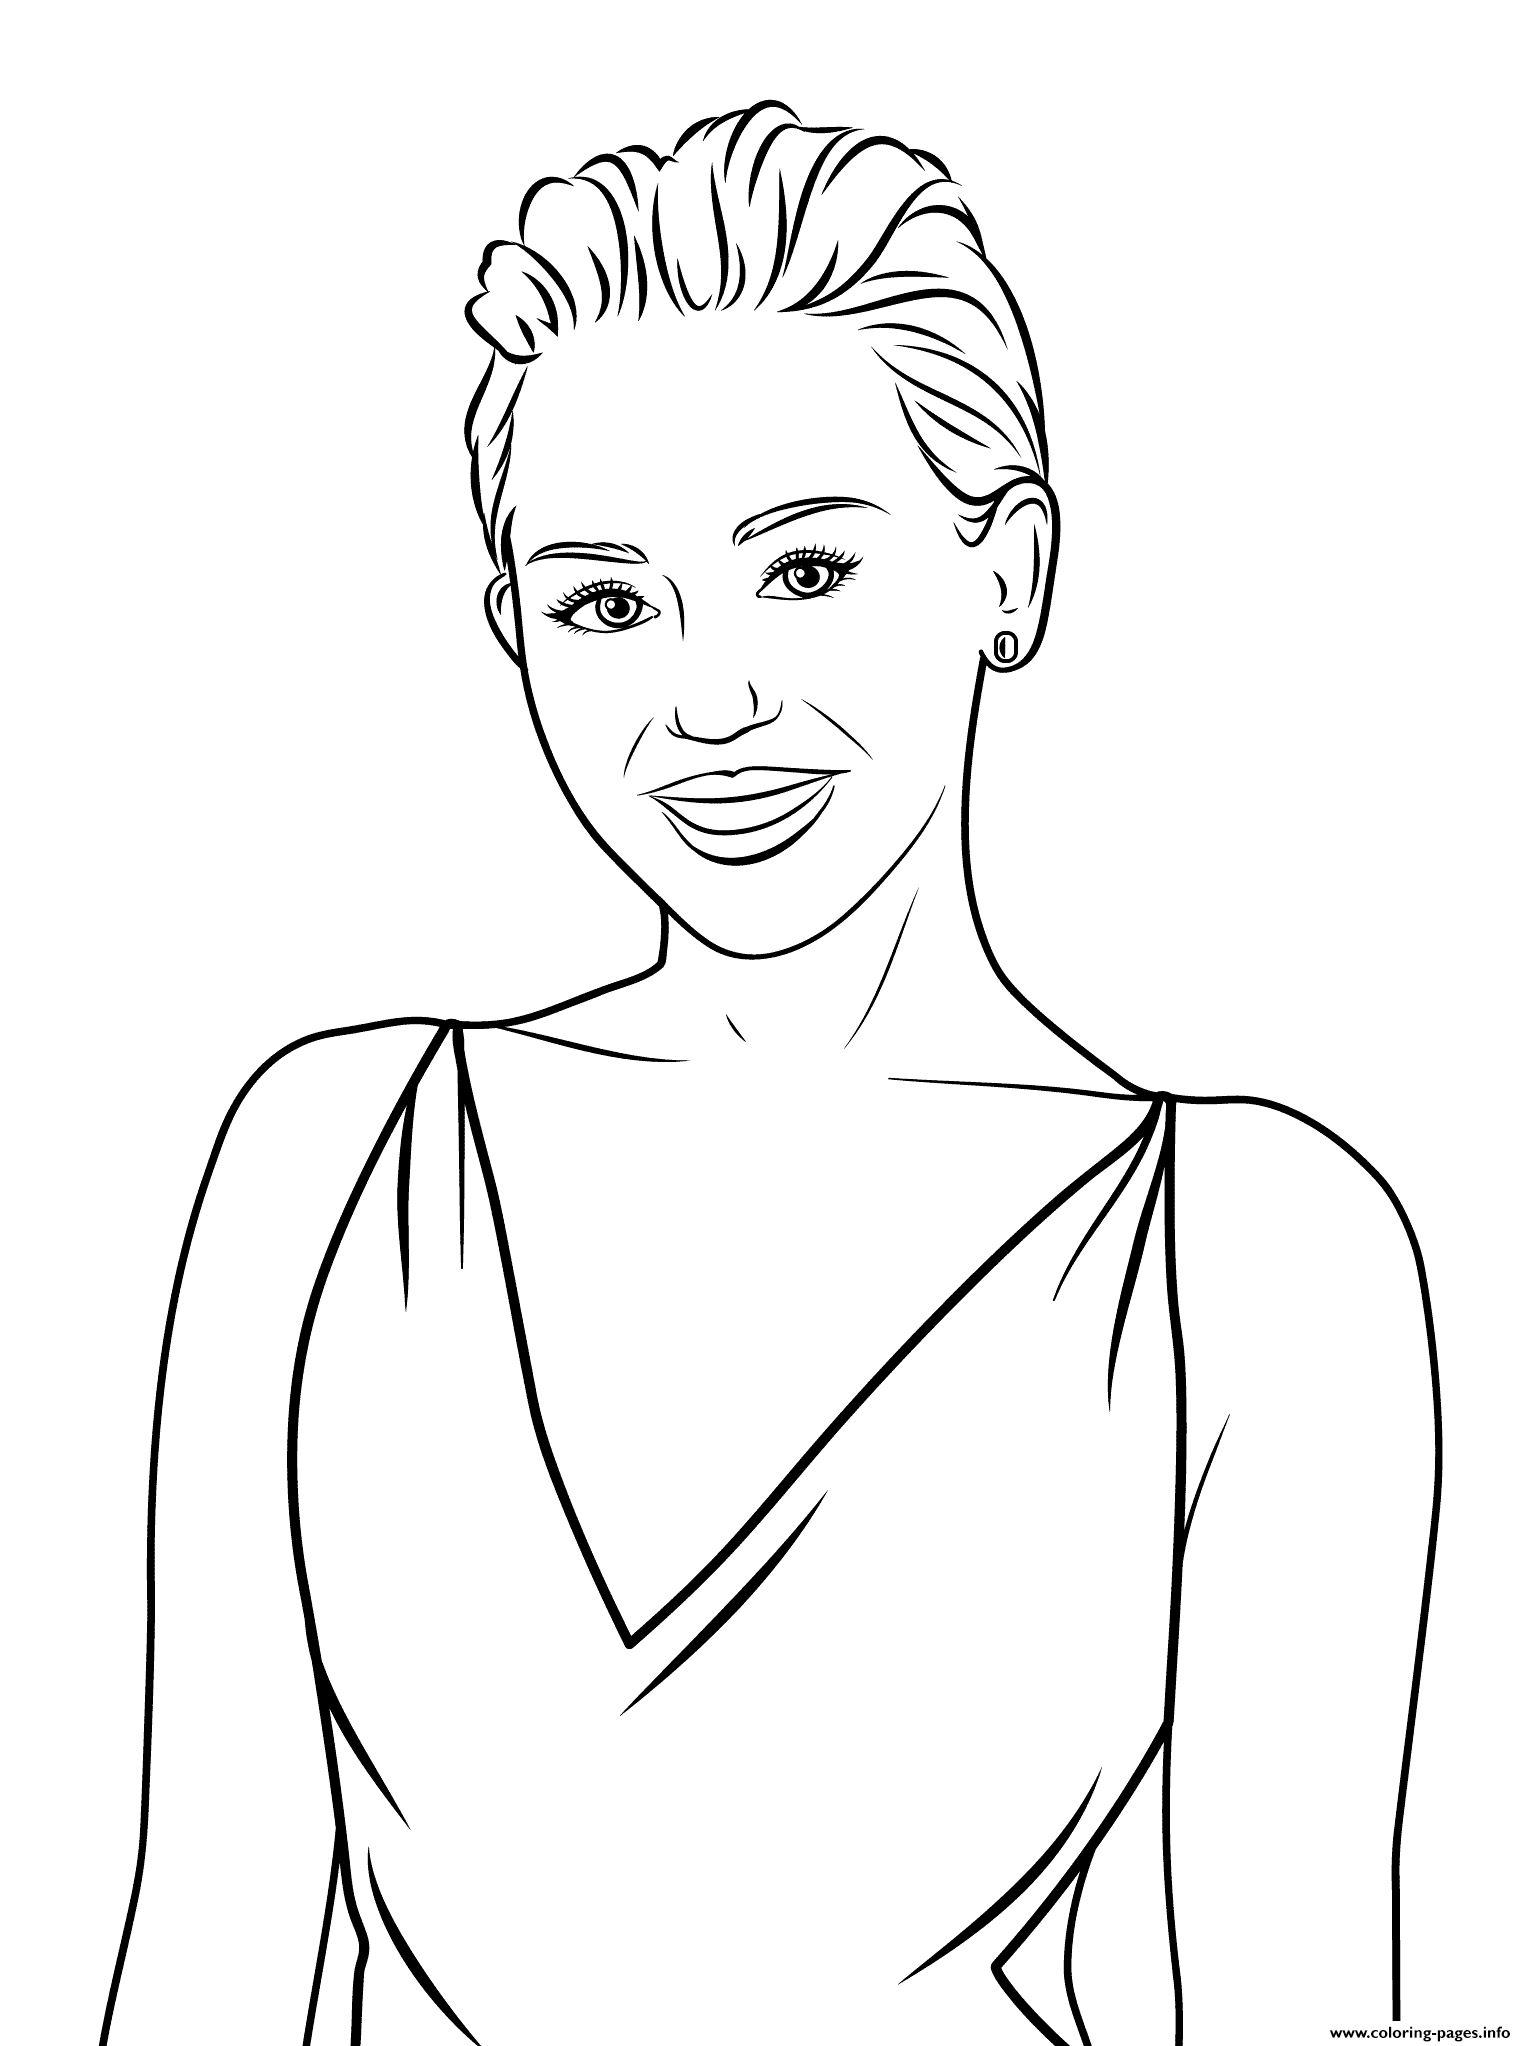 Miley Cyrus Celebrity Coloring Pages Printable